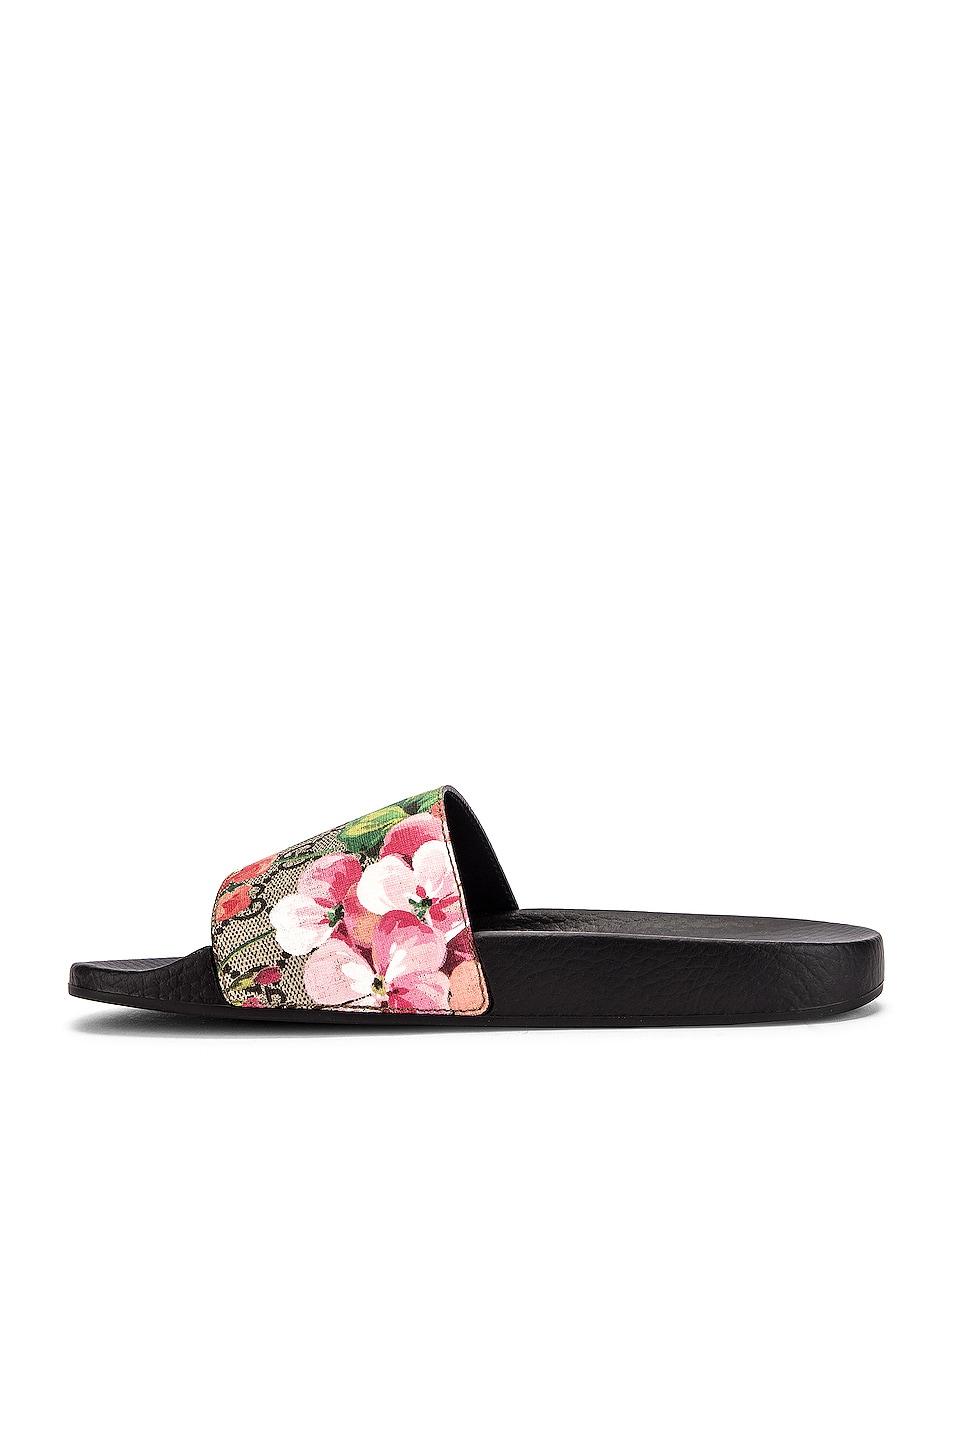 Image 5 of Gucci Pursuit GG Supreme Flora Slides in Beige Ebony & Multicolor